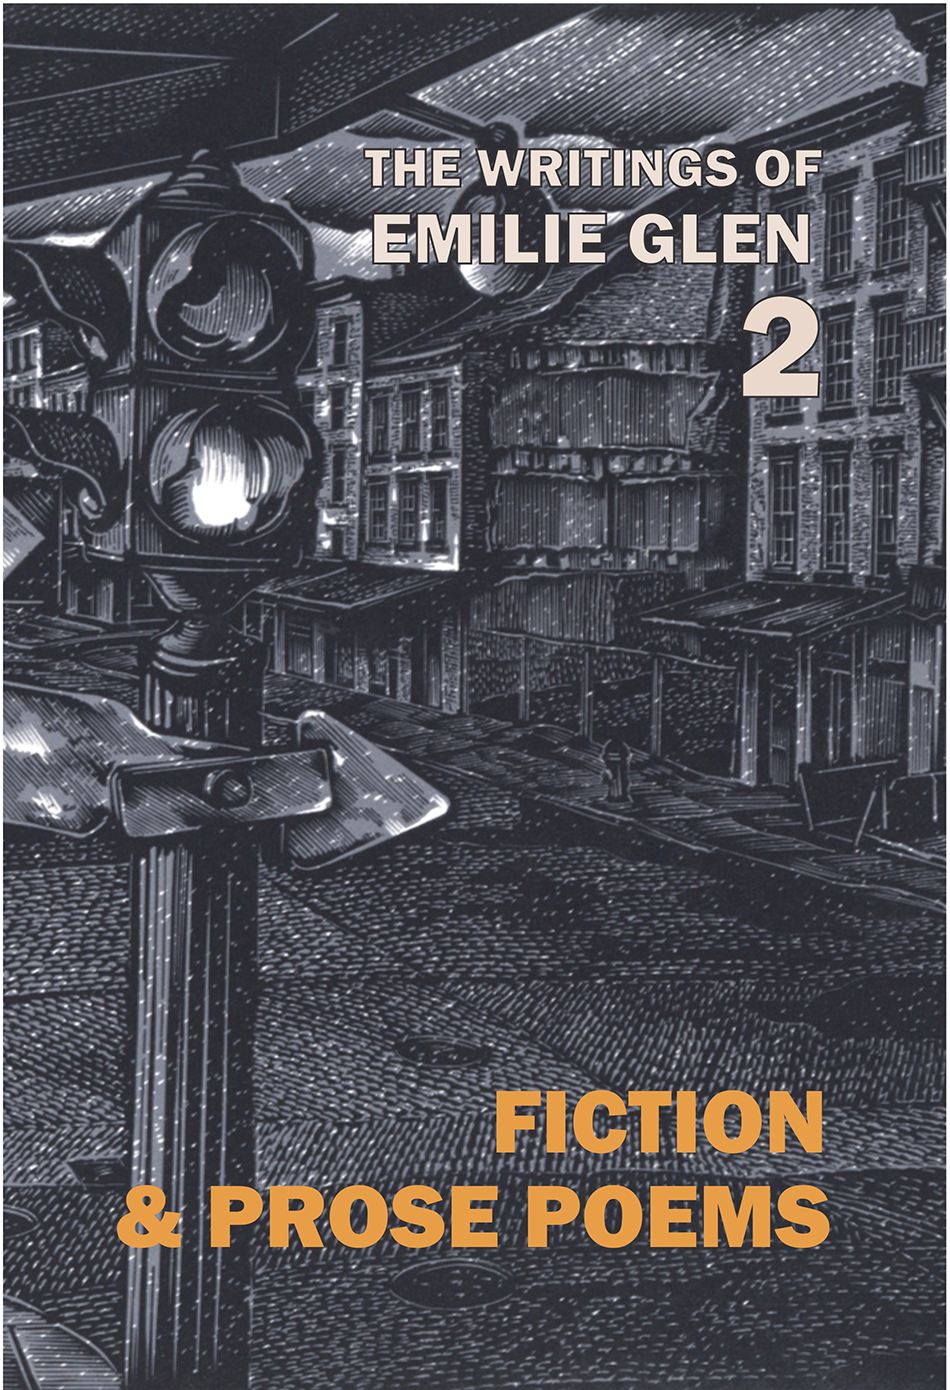 The Writings Of Emilie Glen 2: Fiction And Prose Poems